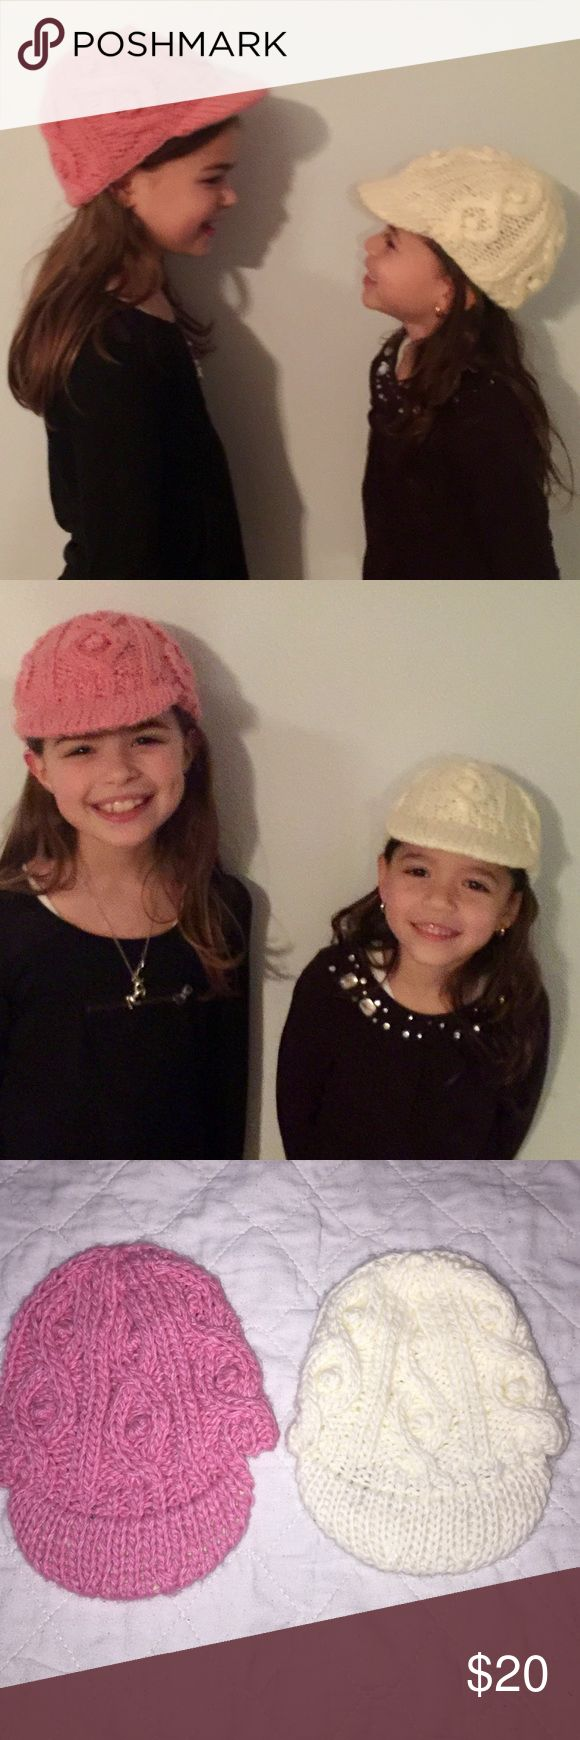 2 Newsboy Cable Knit Hats Fits size 2-6 years EUC 2 Adorable Newsboy Cable knit Hats from San Diego Hat Company. 1 pink & 1 ivory. Size says 0-12 months but as you can see my daughters are modeling them. Best fit 2-6 years (has stretch to them) only worn 1x and for modeling. Excellent Condition San Diego Hat Company Accessories Hats